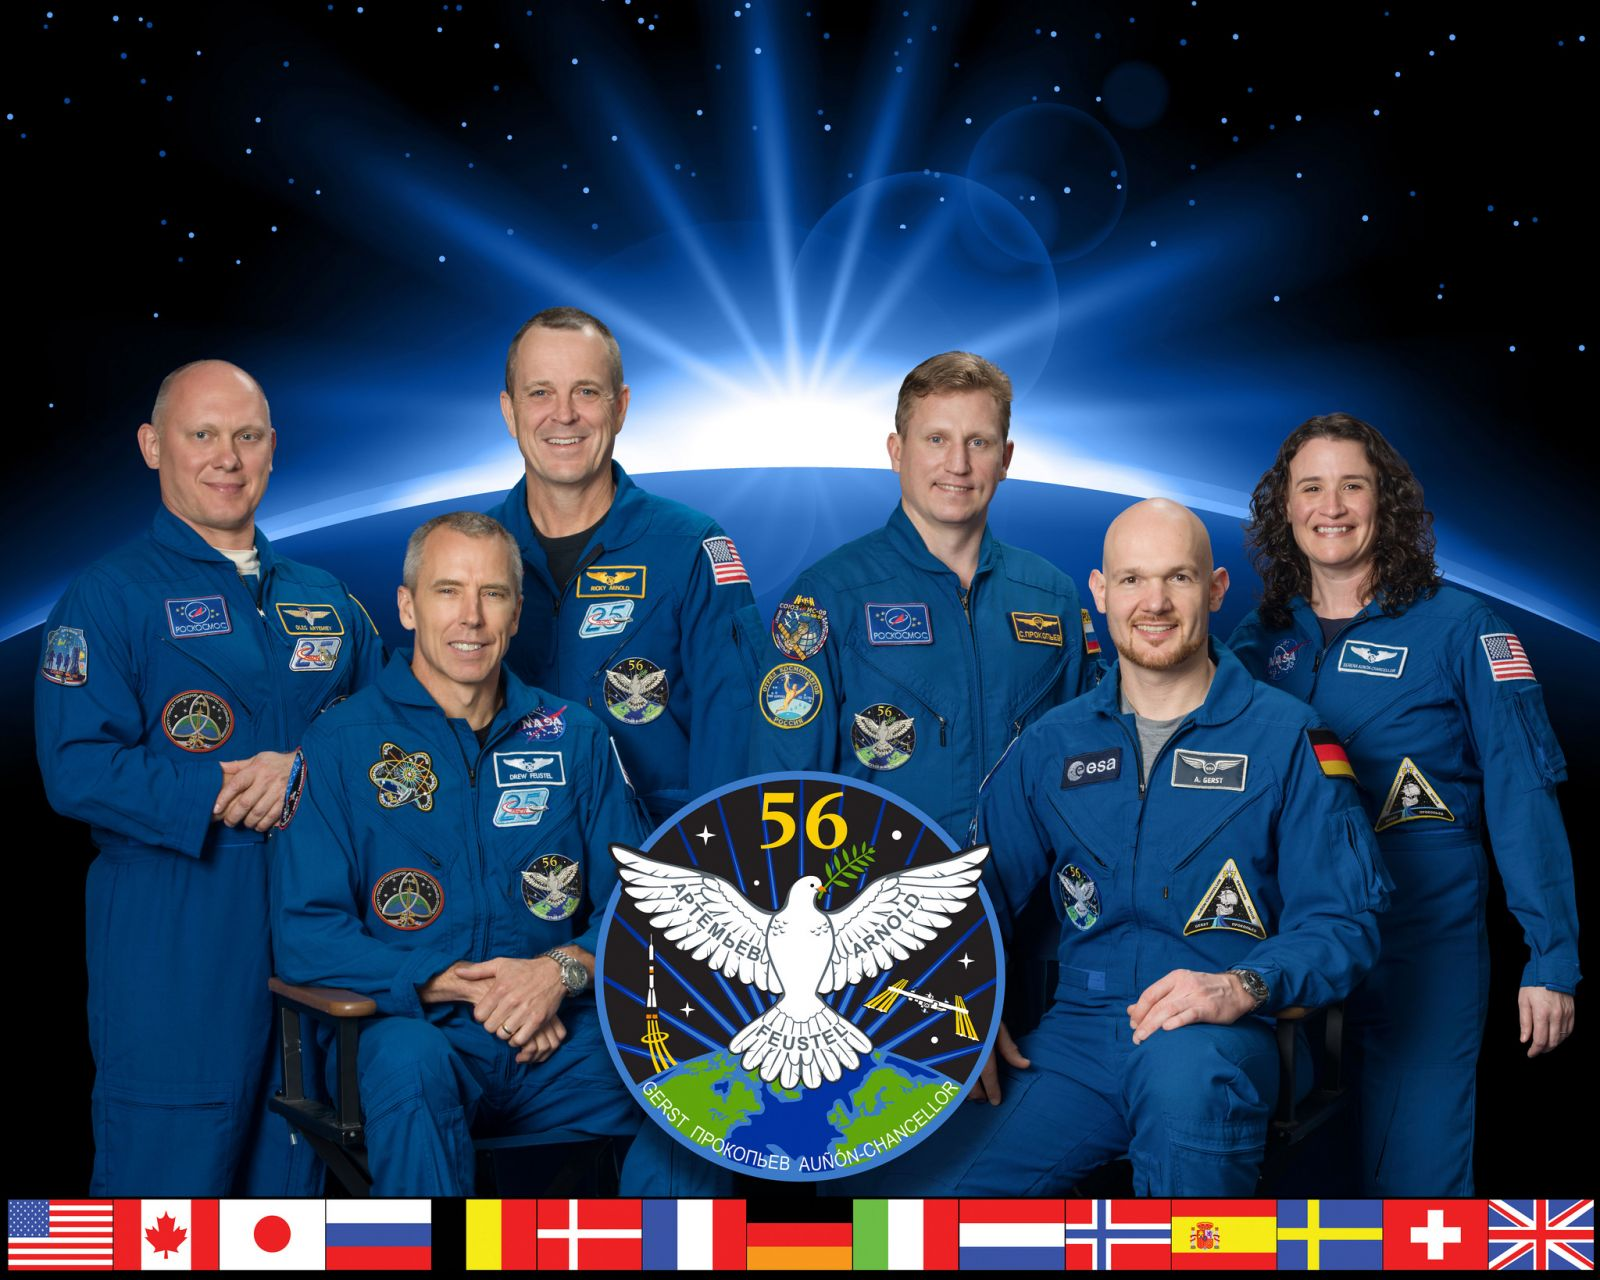 Trio of astronauts headed to International Space Station